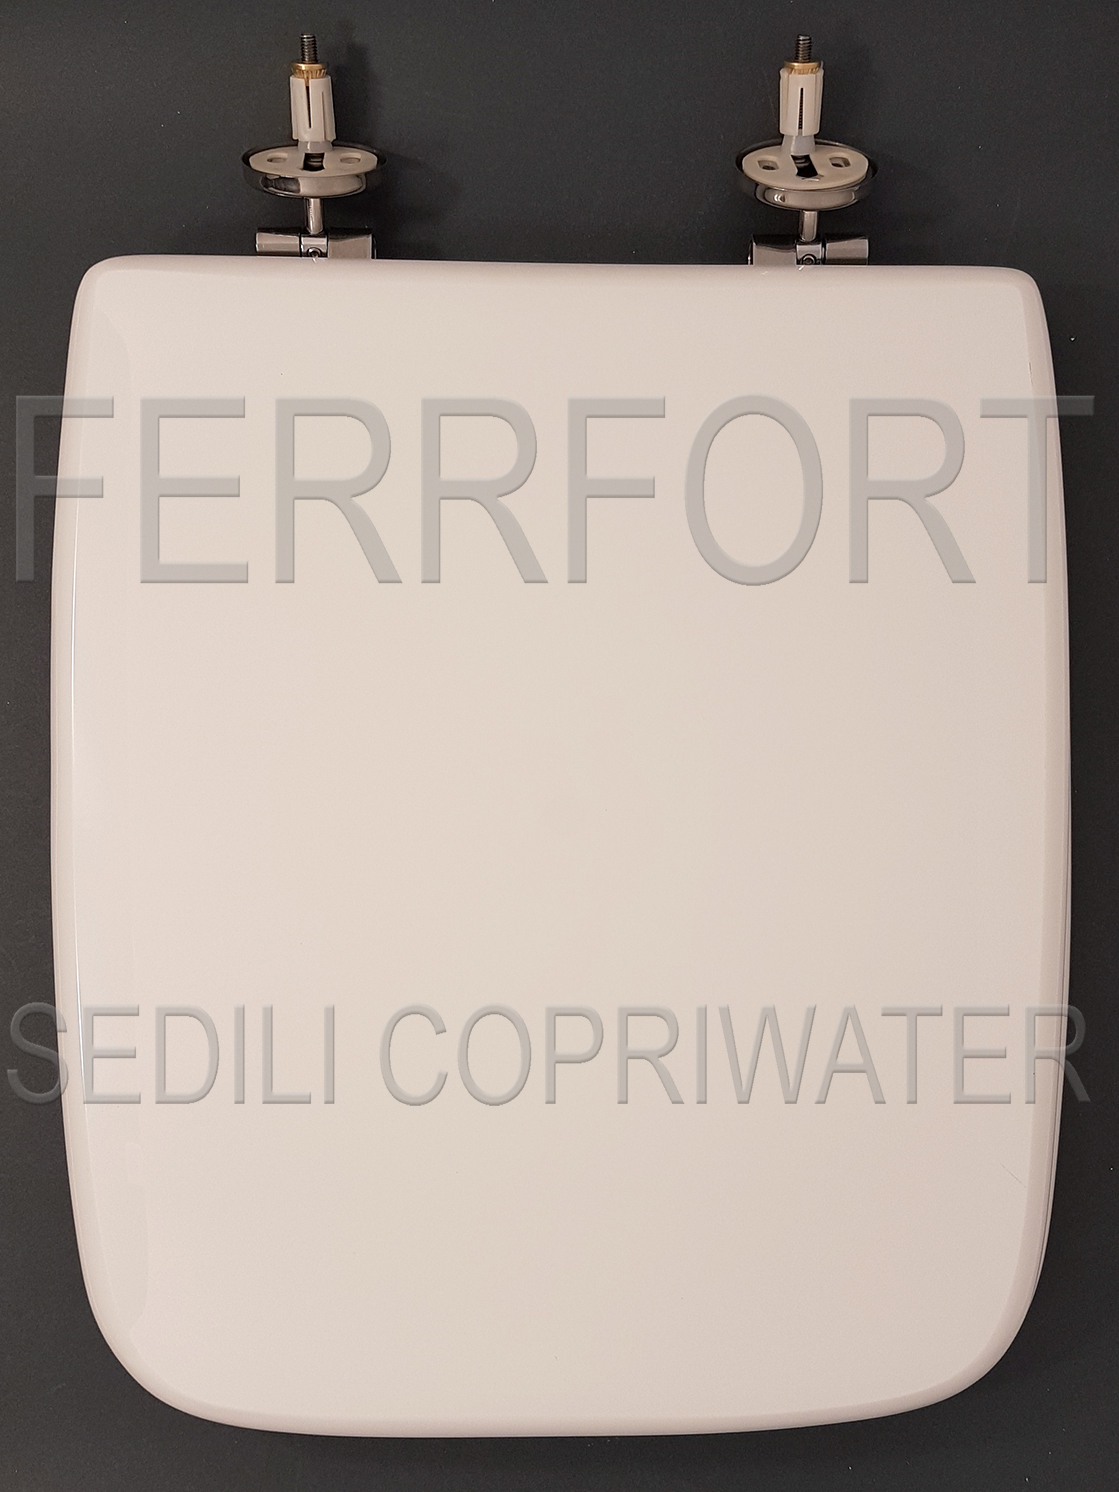 SEDILE COPRIWATER CANTICA IDEAL STANDARD BIANCO